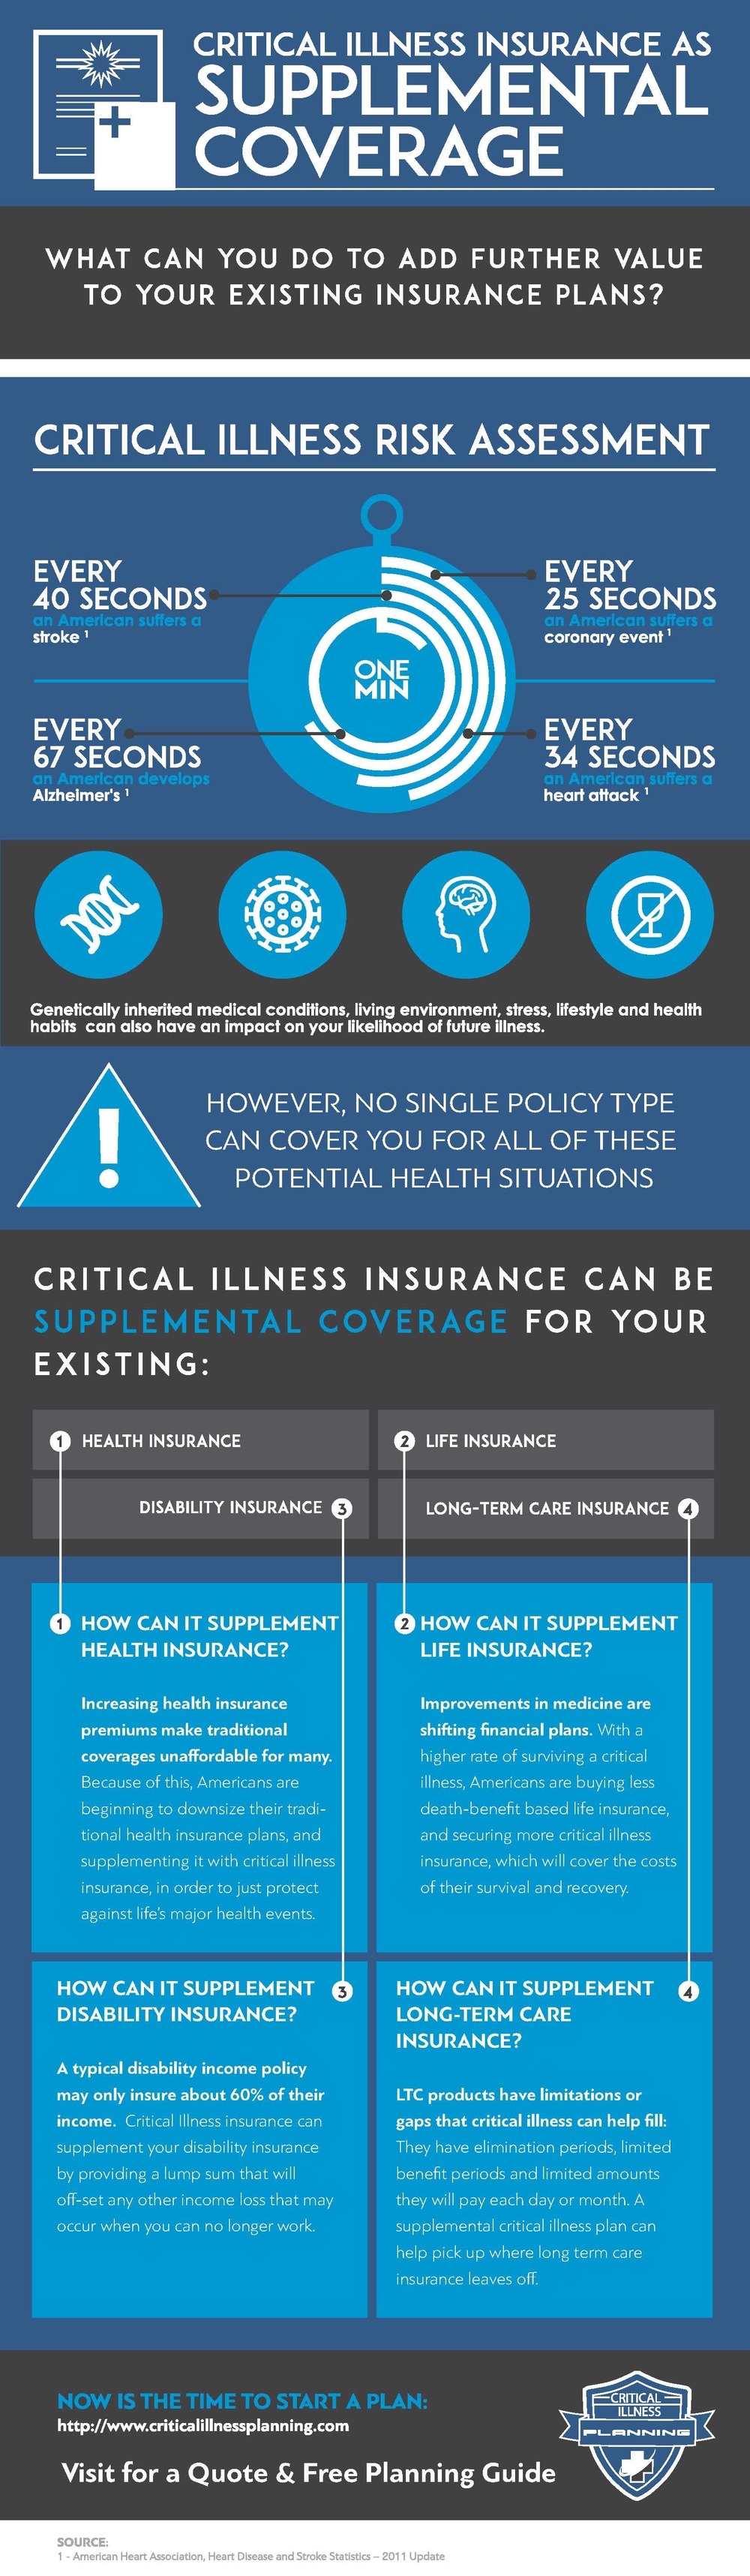 Infographic credit: Critical Illness Planning